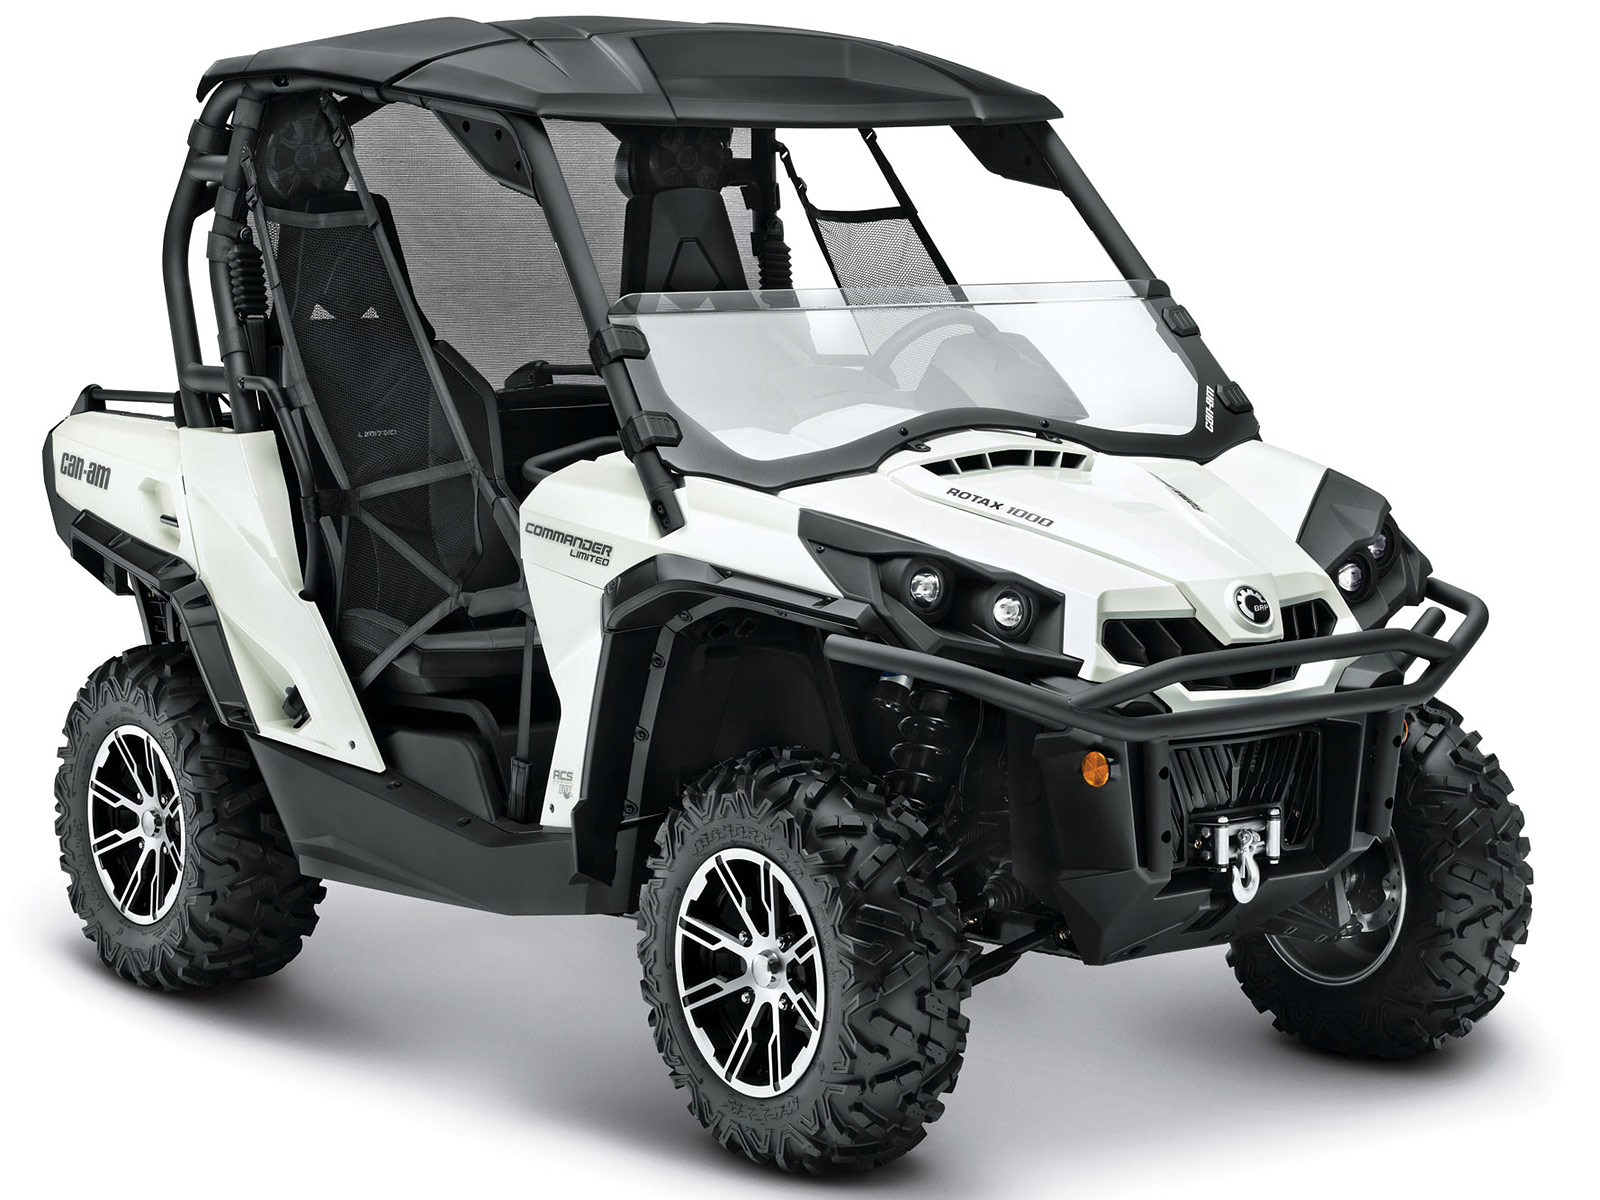 small resolution of 2013 can am commander 1000 limited atv pictures 480x360 pixels